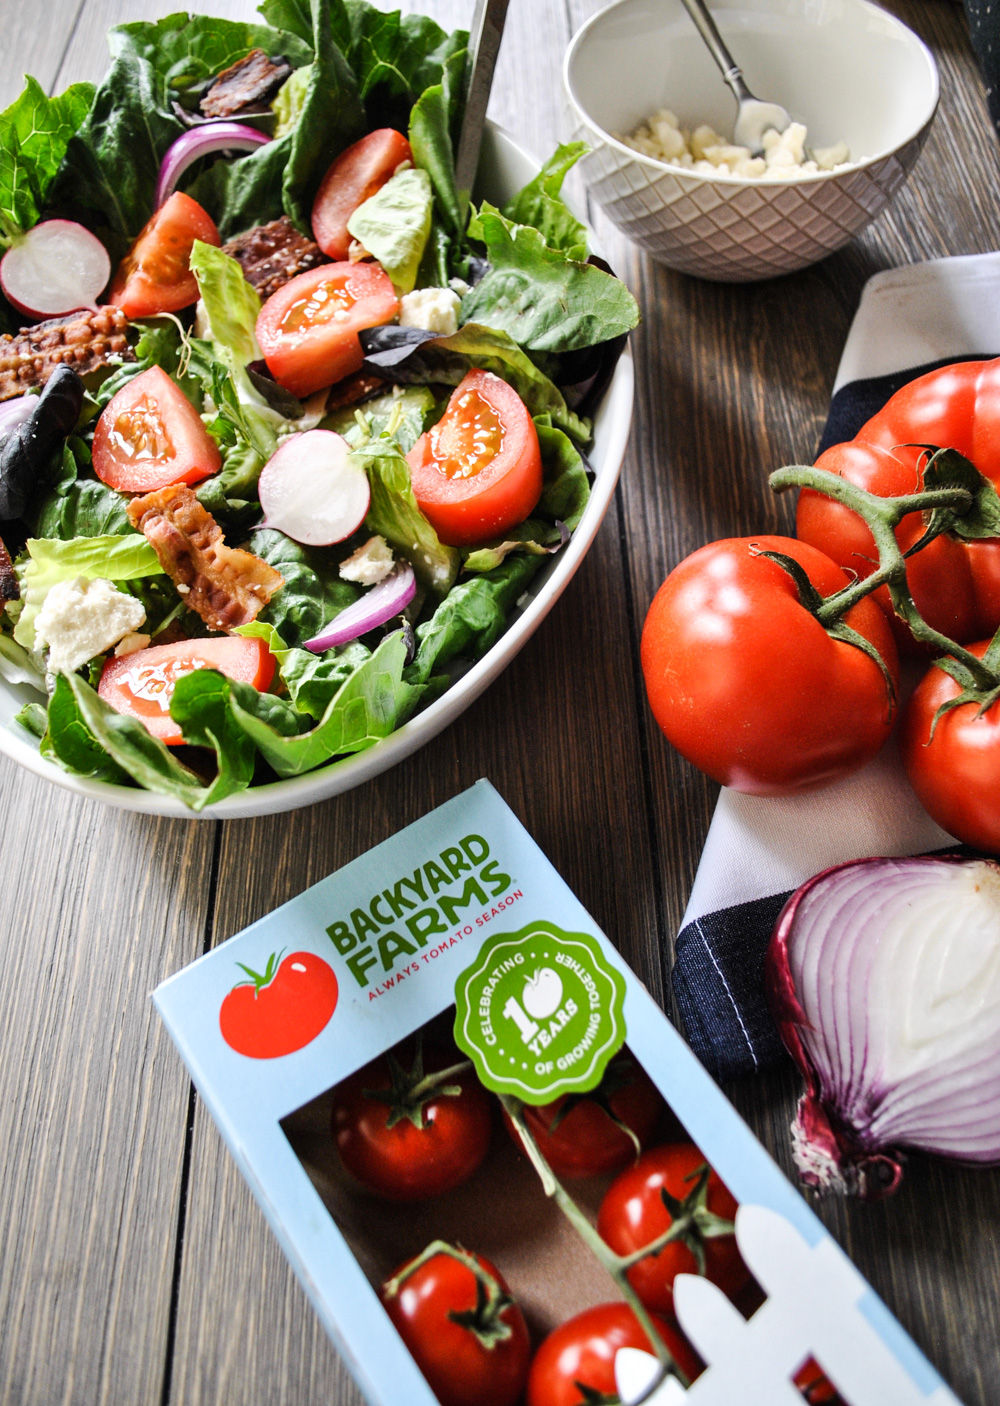 Lifestyle Blogger Jenny Meassick of Chocolate and Lace shares her recipe for BLT salad featuring Backyard Farms tomatoes.